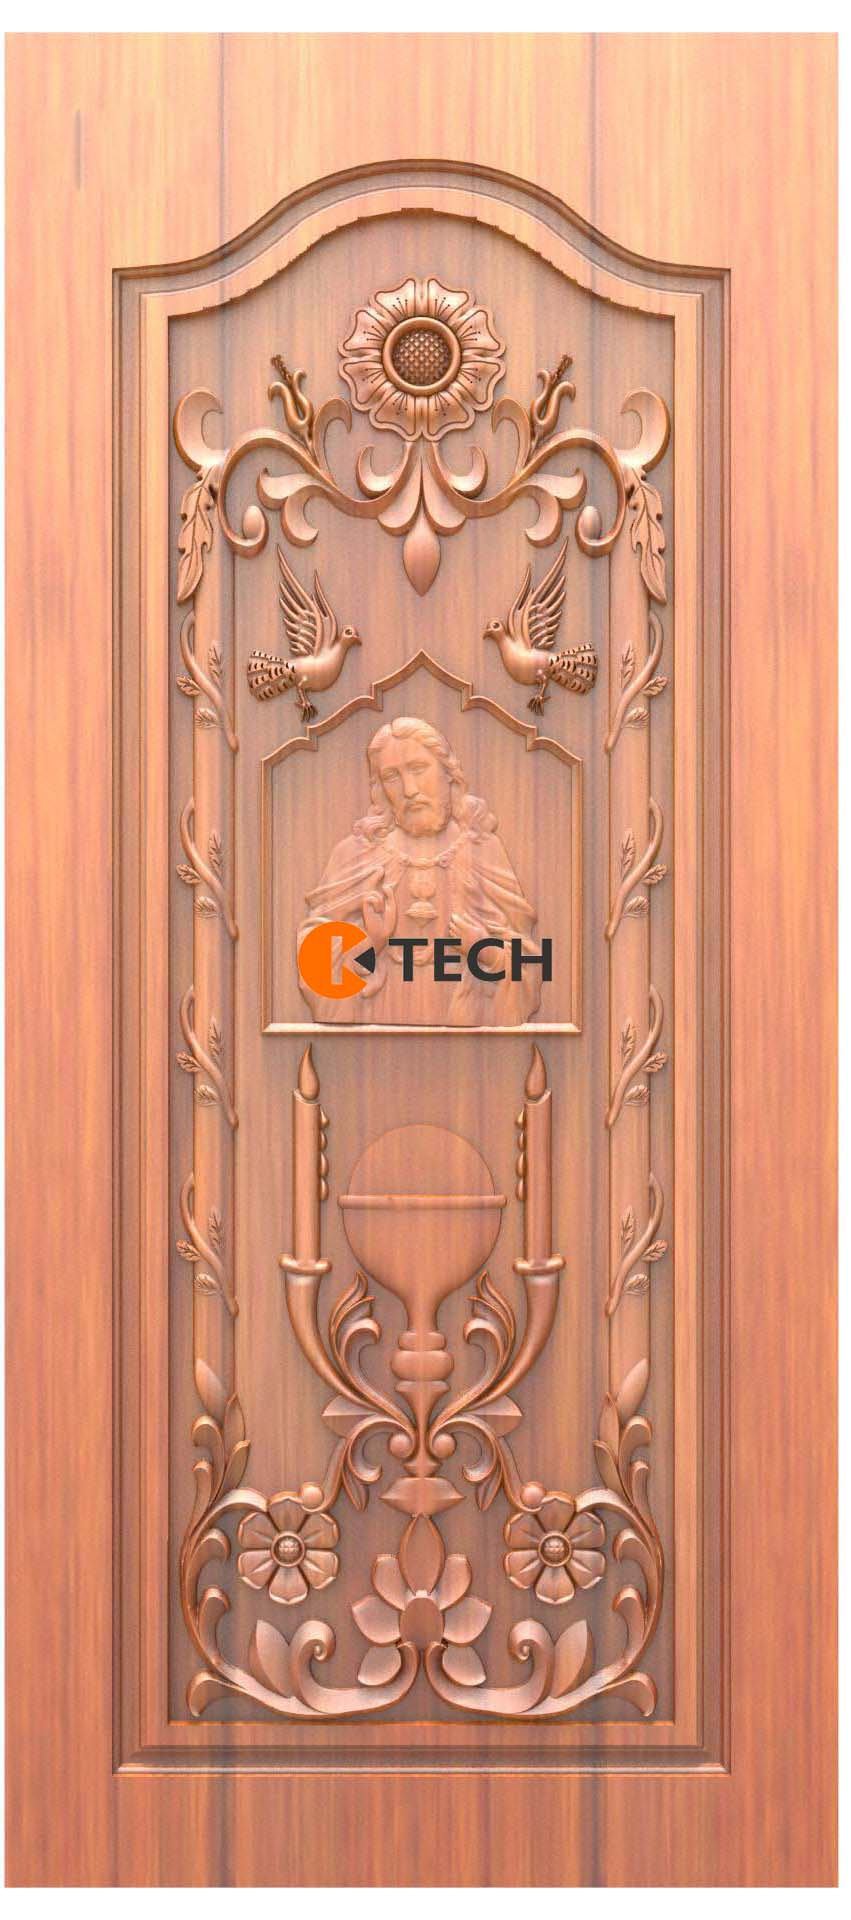 K-TECH CNC Doors Design 169